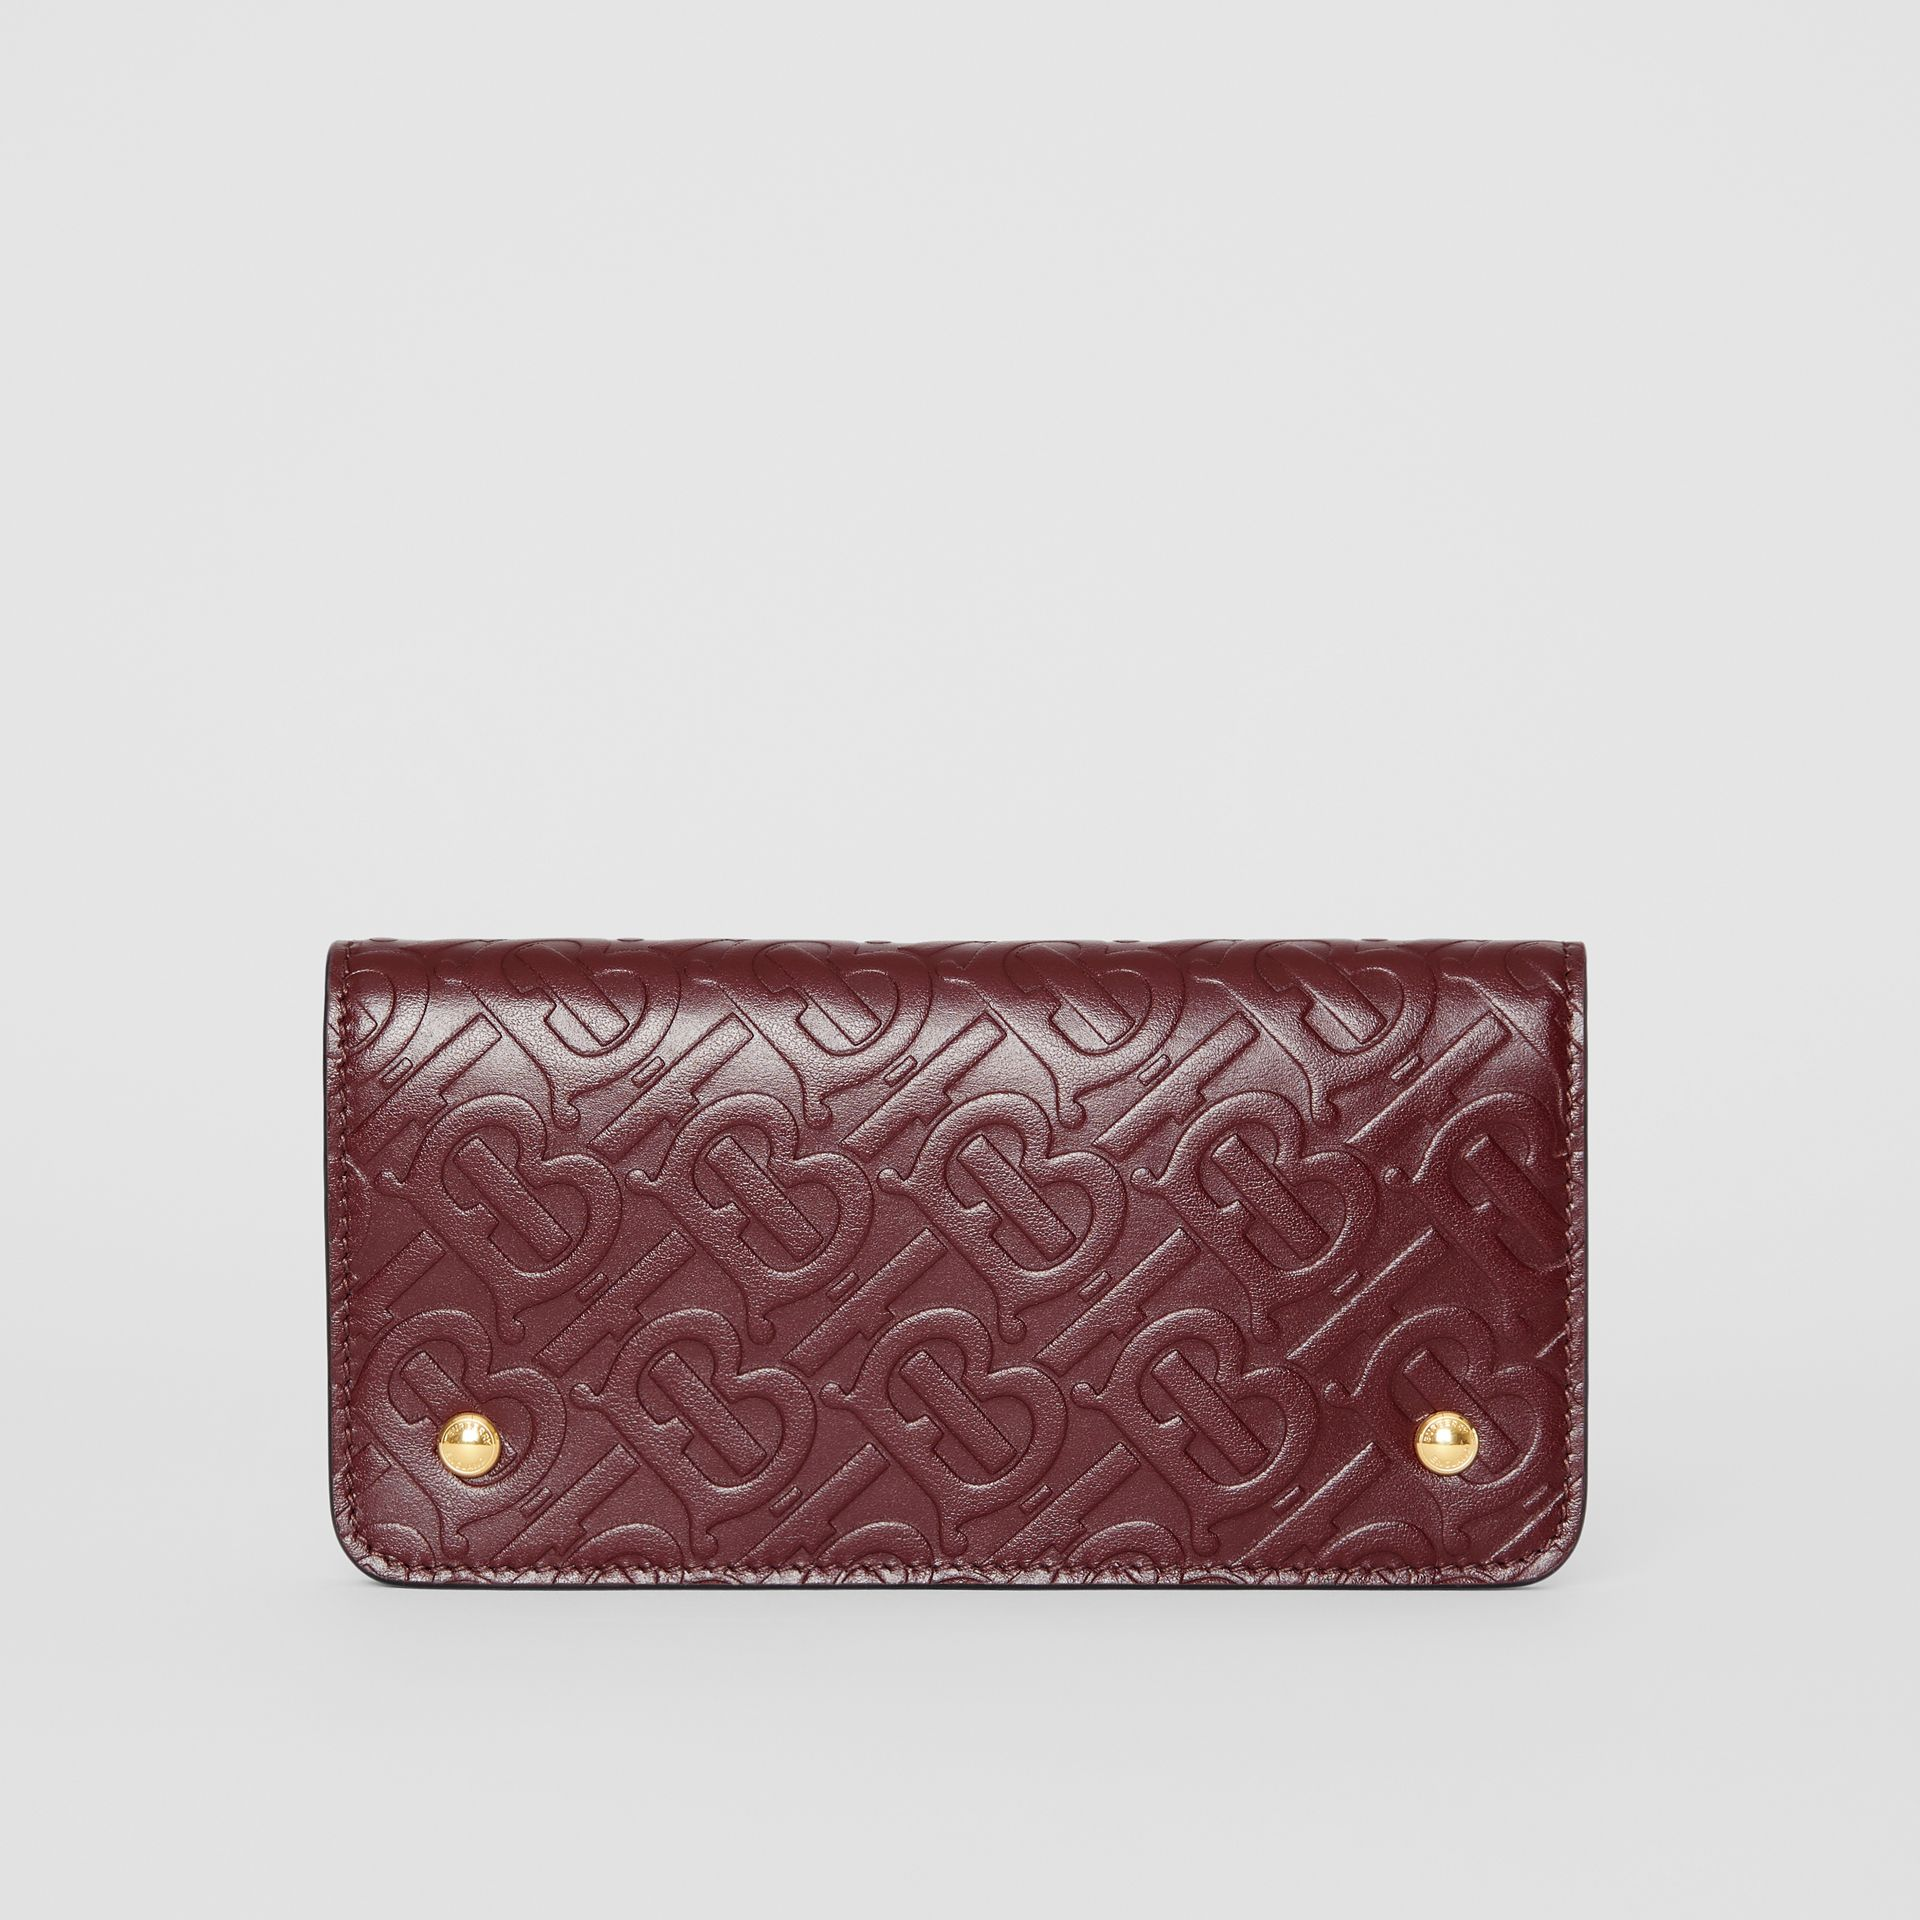 Monogram Leather Phone Wallet in Oxblood - Women | Burberry United Kingdom - gallery image 0